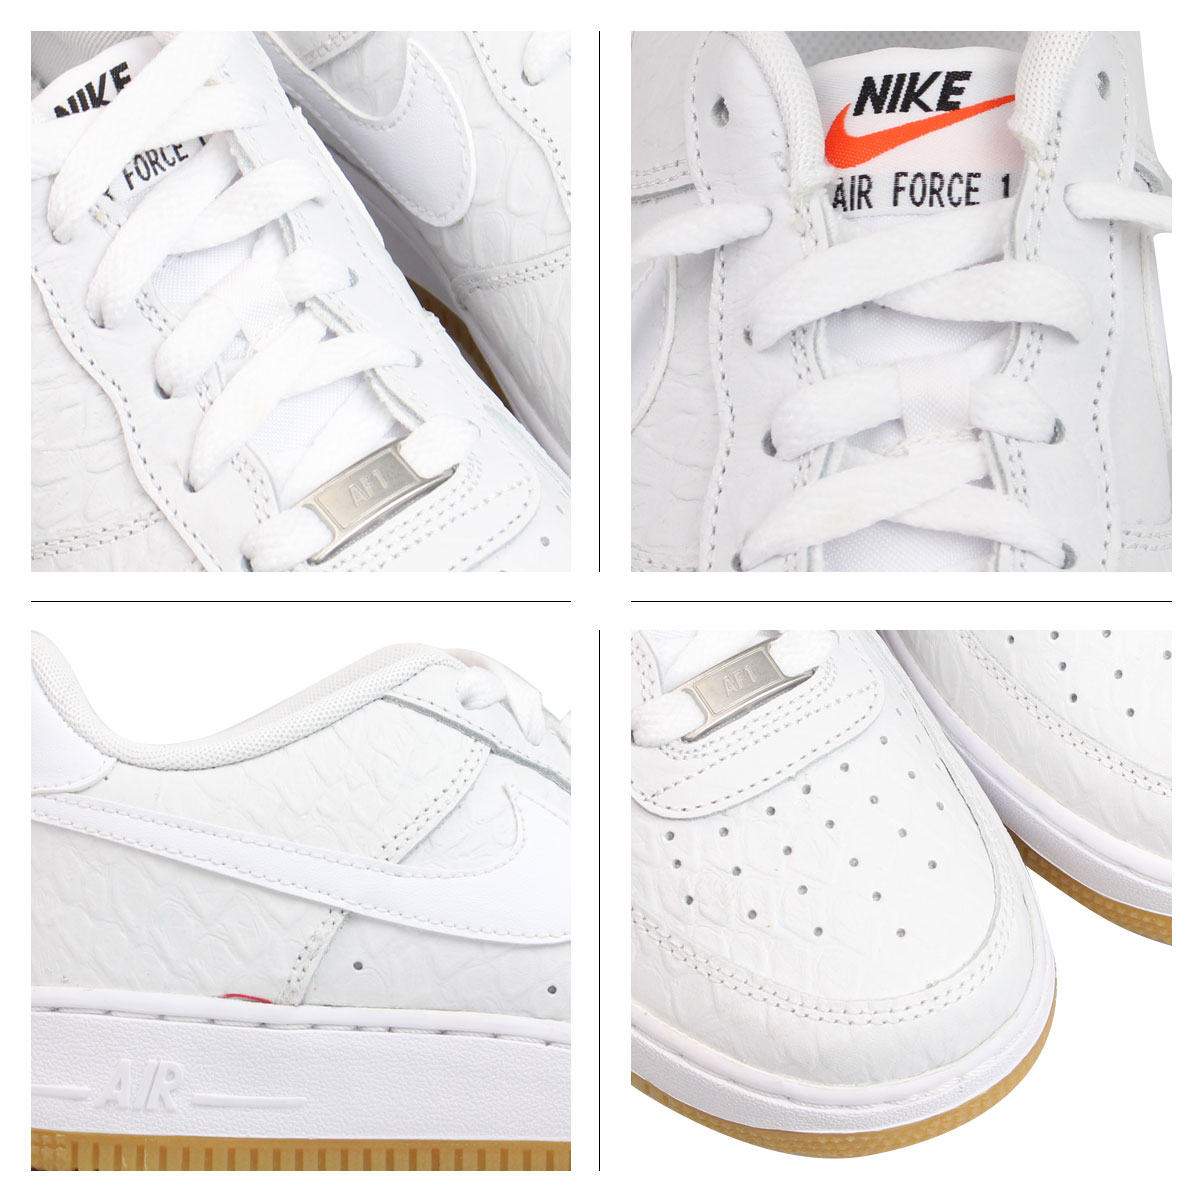 online store f27e7 a1504 «Reservation products» «3/28 days will be in stock» Nike NIKE women's AIR  FORCE 1 LOW BG sneakers air force 1 low boys leather kids ' Junior kids ...